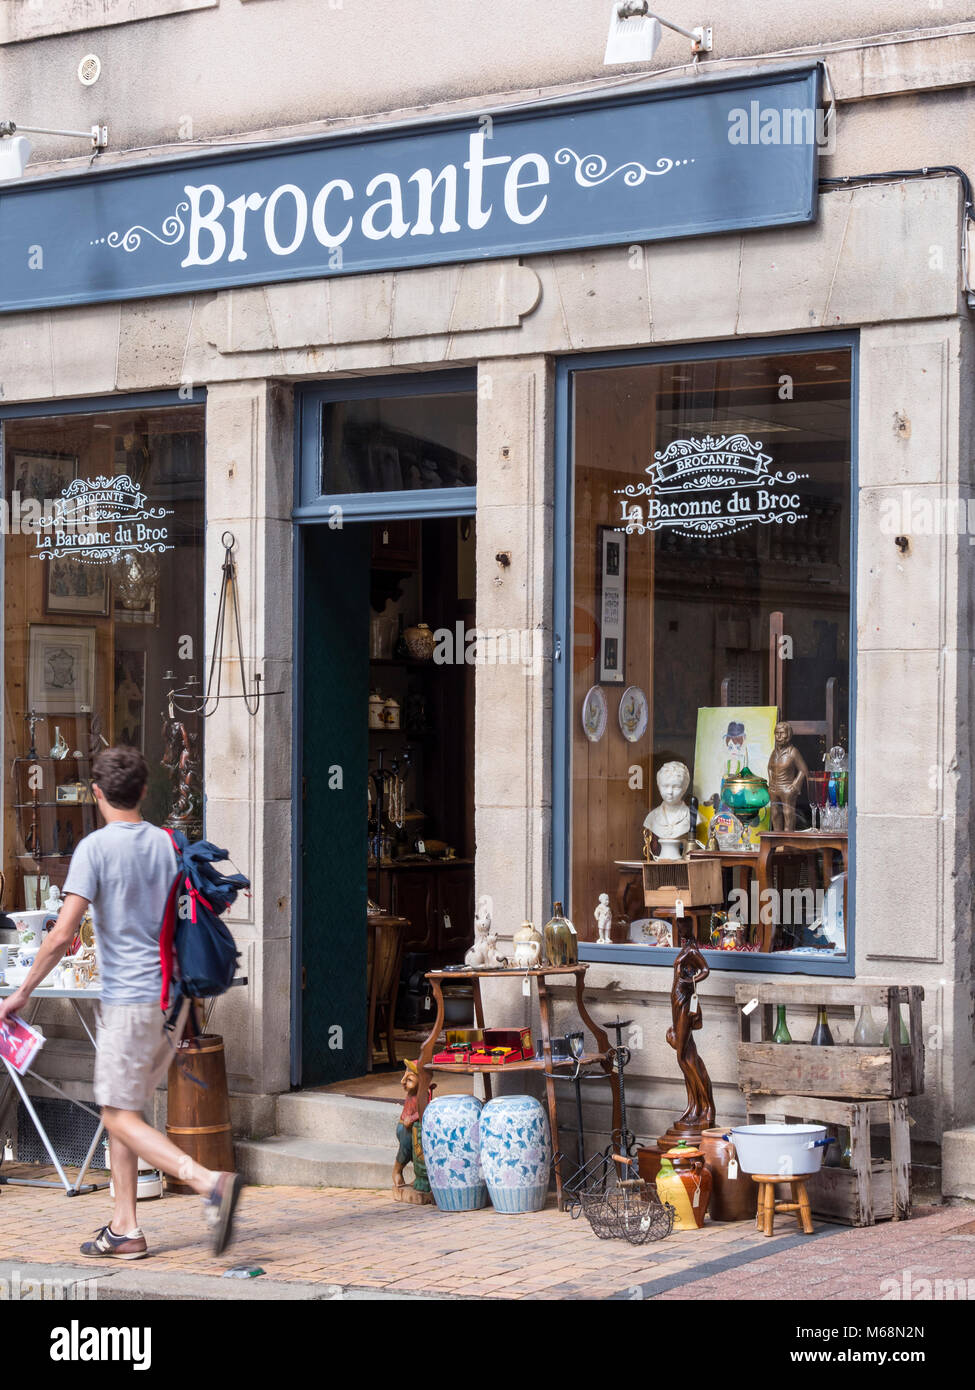 Bric A Brac Saone Et Loire brocante france stock photos & brocante france stock images